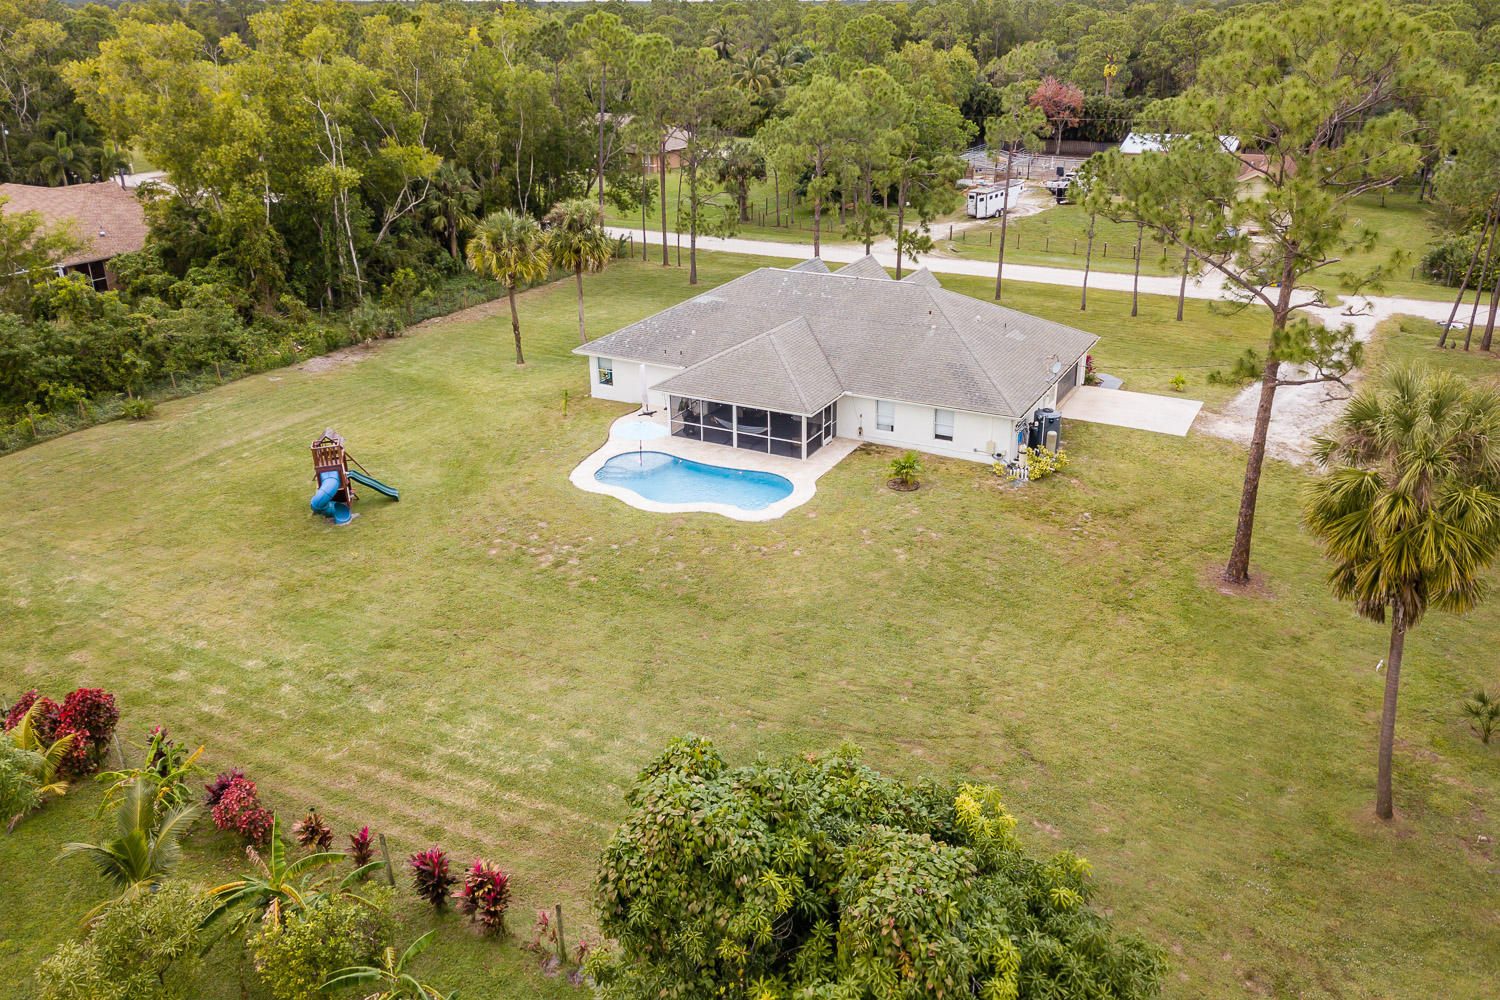 18798 90th Street The Acreage, FL 33470 small photo 47